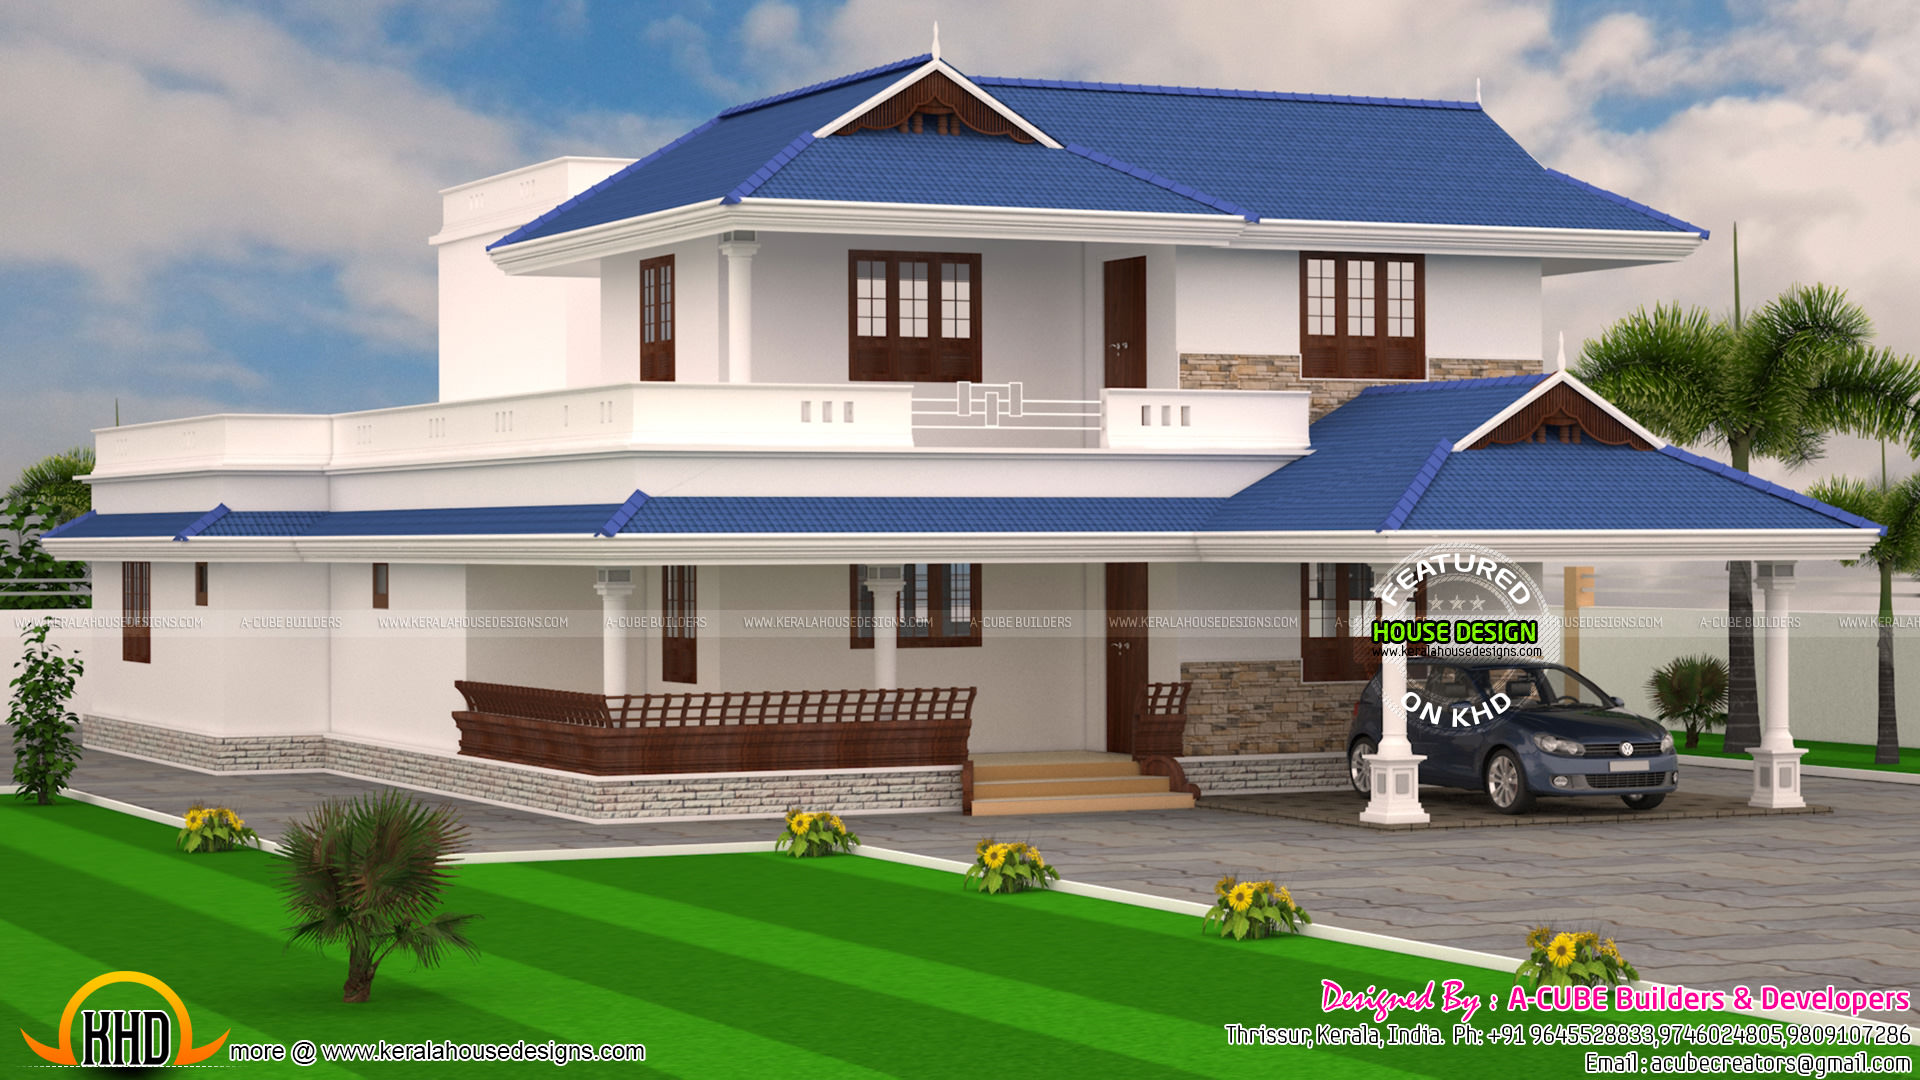 Kerala new model house joy studio design gallery best for New house plans kerala model